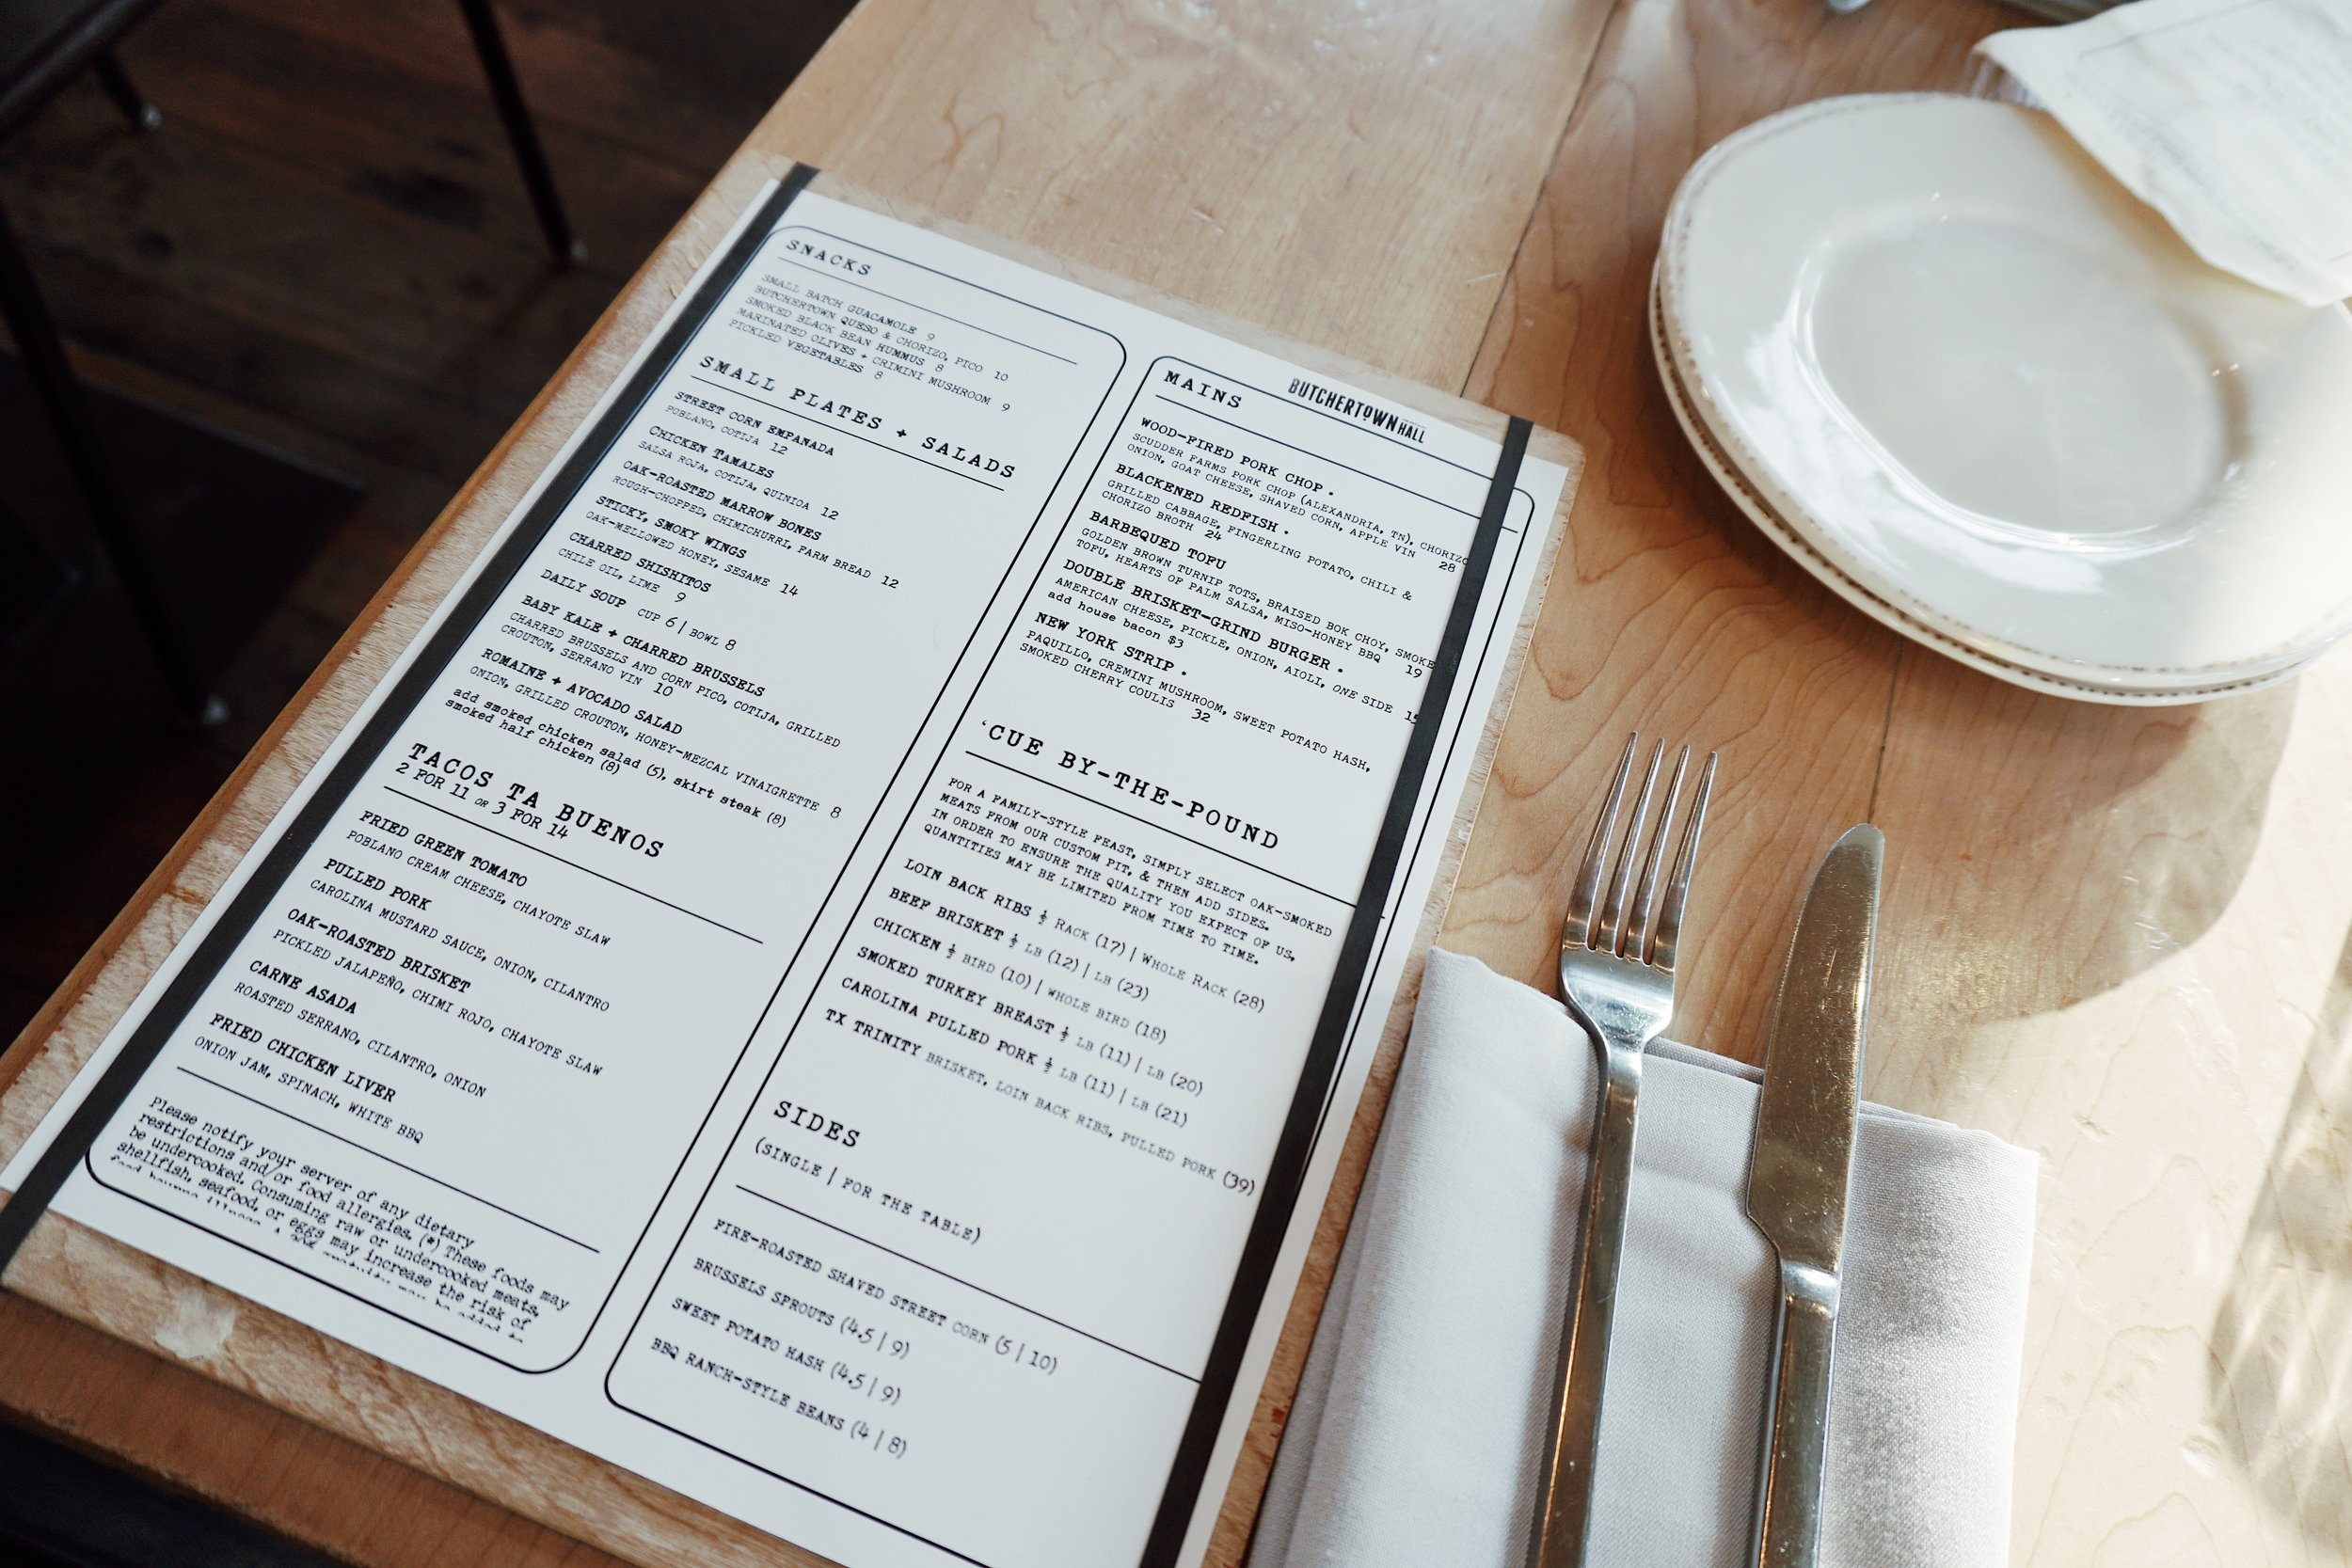 butchertown-hall-menu-nashville-tennessee-where-to-eat.jpg